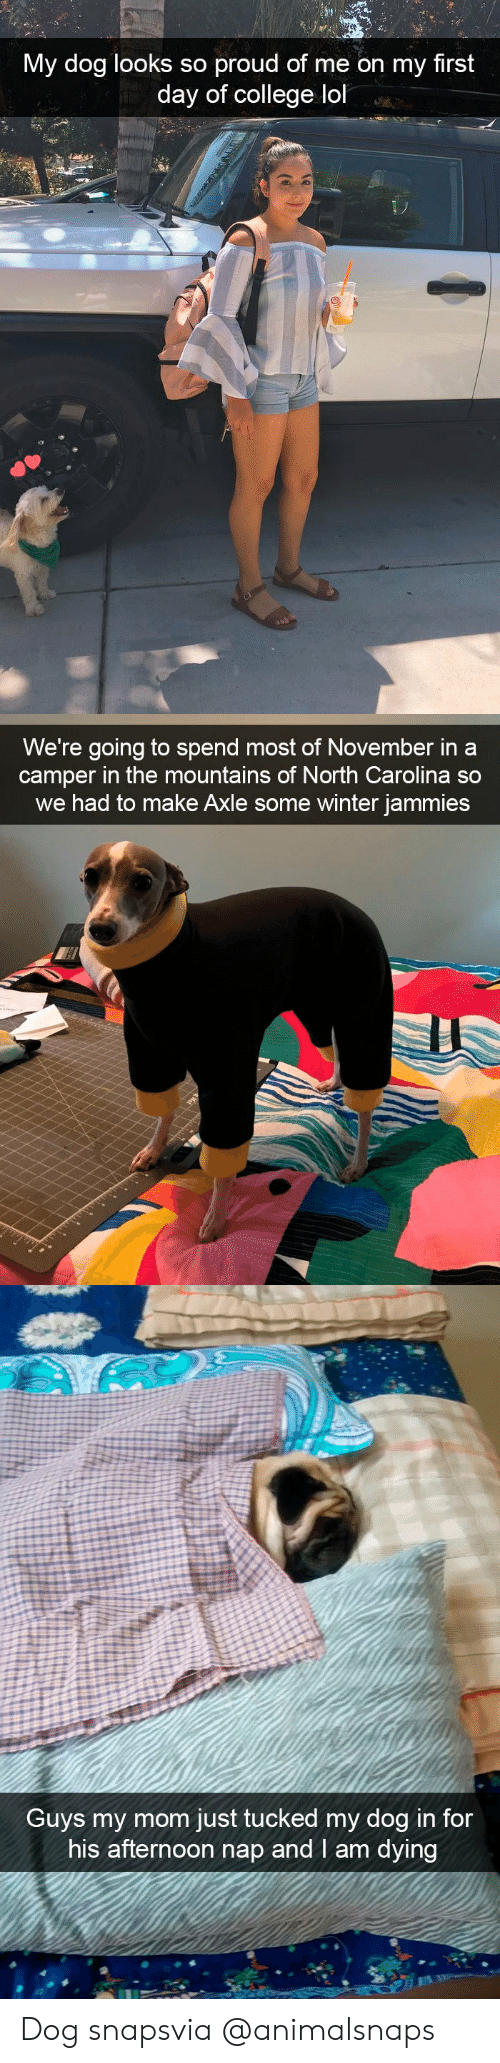 Tucked: My dog looks so proud of me on my first  day of college lol   We're going to spend most of November in a  camper in the mountains of North Carolina so  we had to make Axle some winter jammies   Guvs my mom just tucked my dog in for  his afternoon nap and I am dying Dog snapsvia @animalsnaps